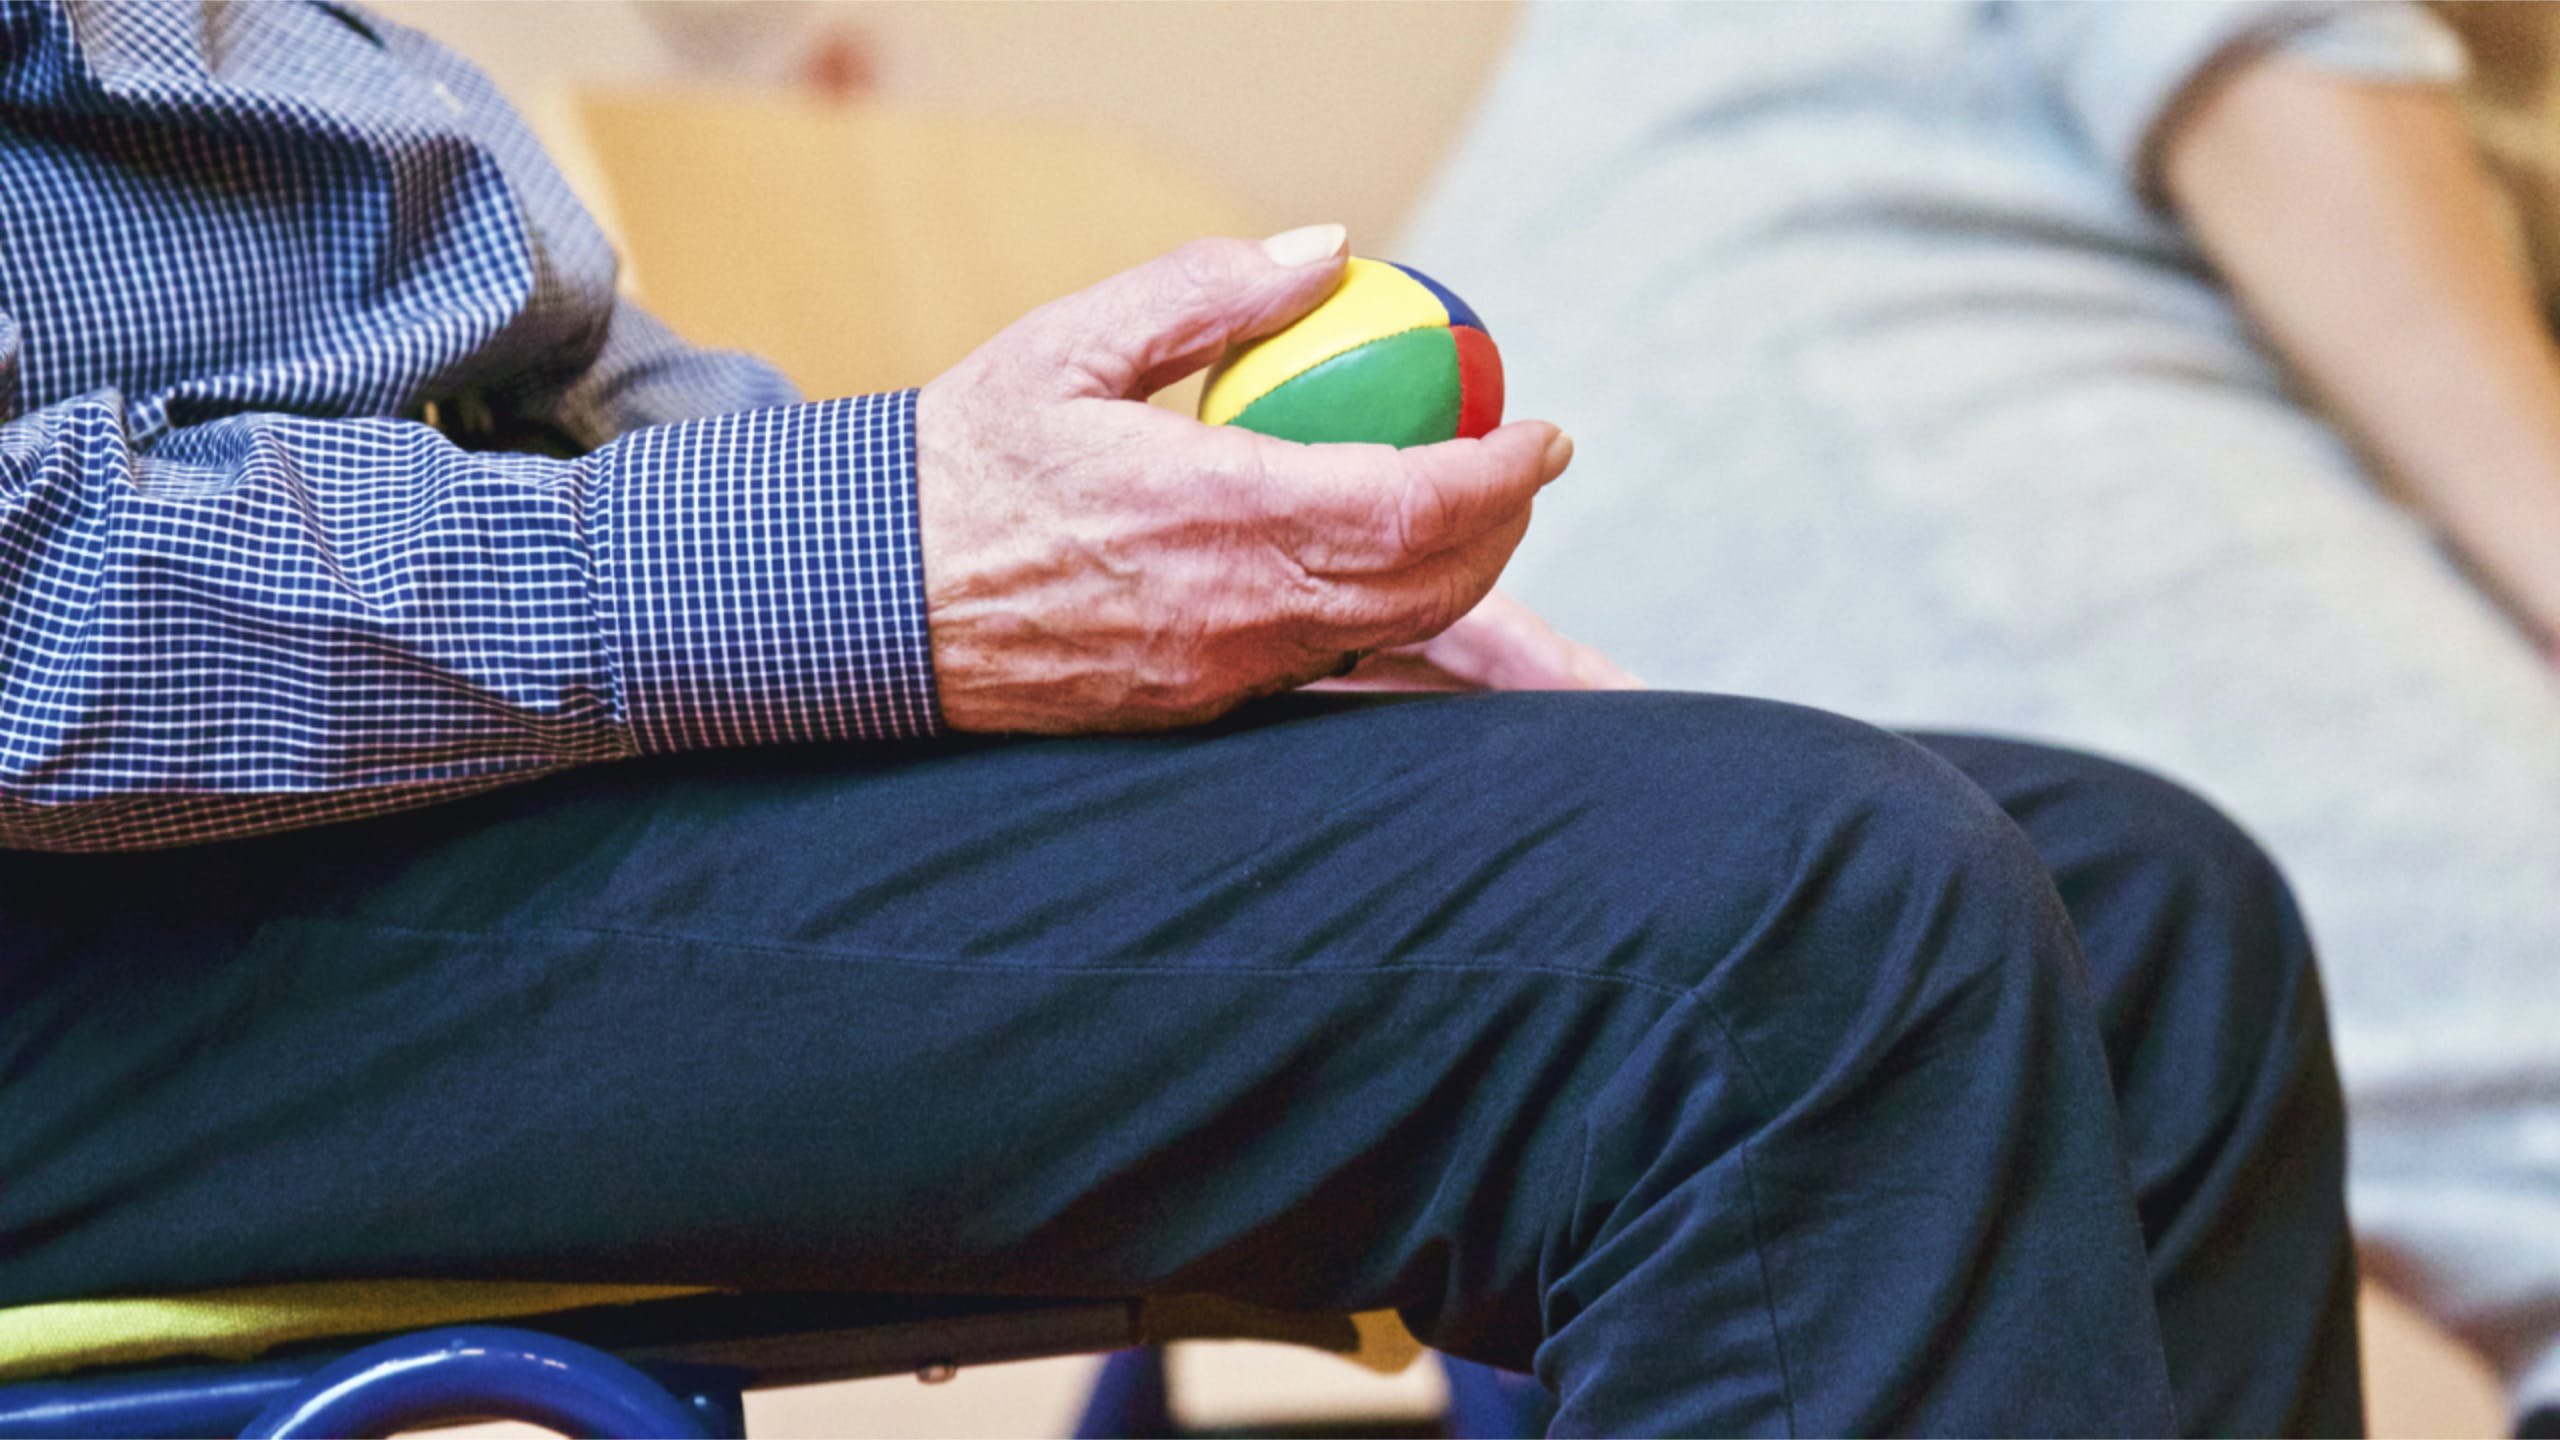 Person Holding Multicolored Ball